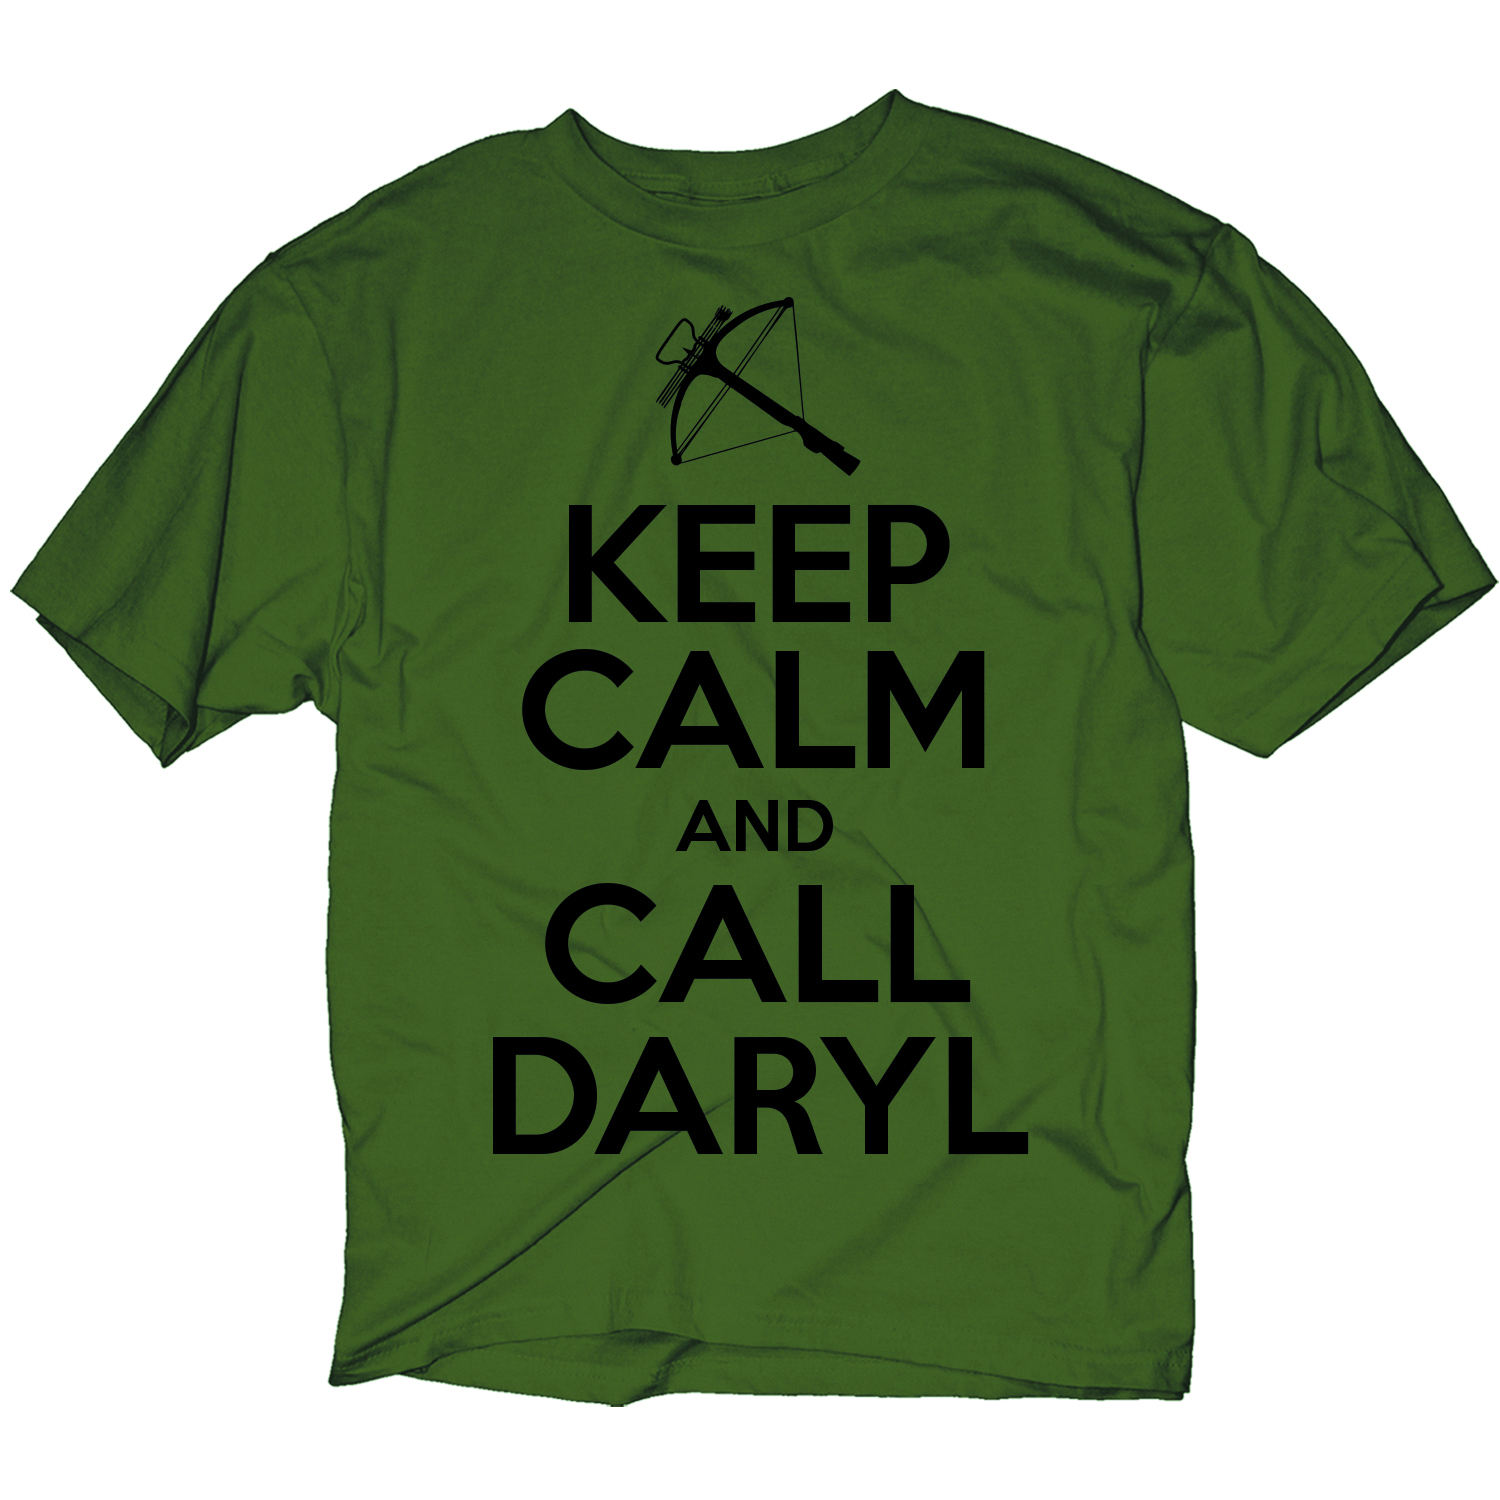 WALKING DEAD KC CALL DARYL PX OLIVE T/S LG